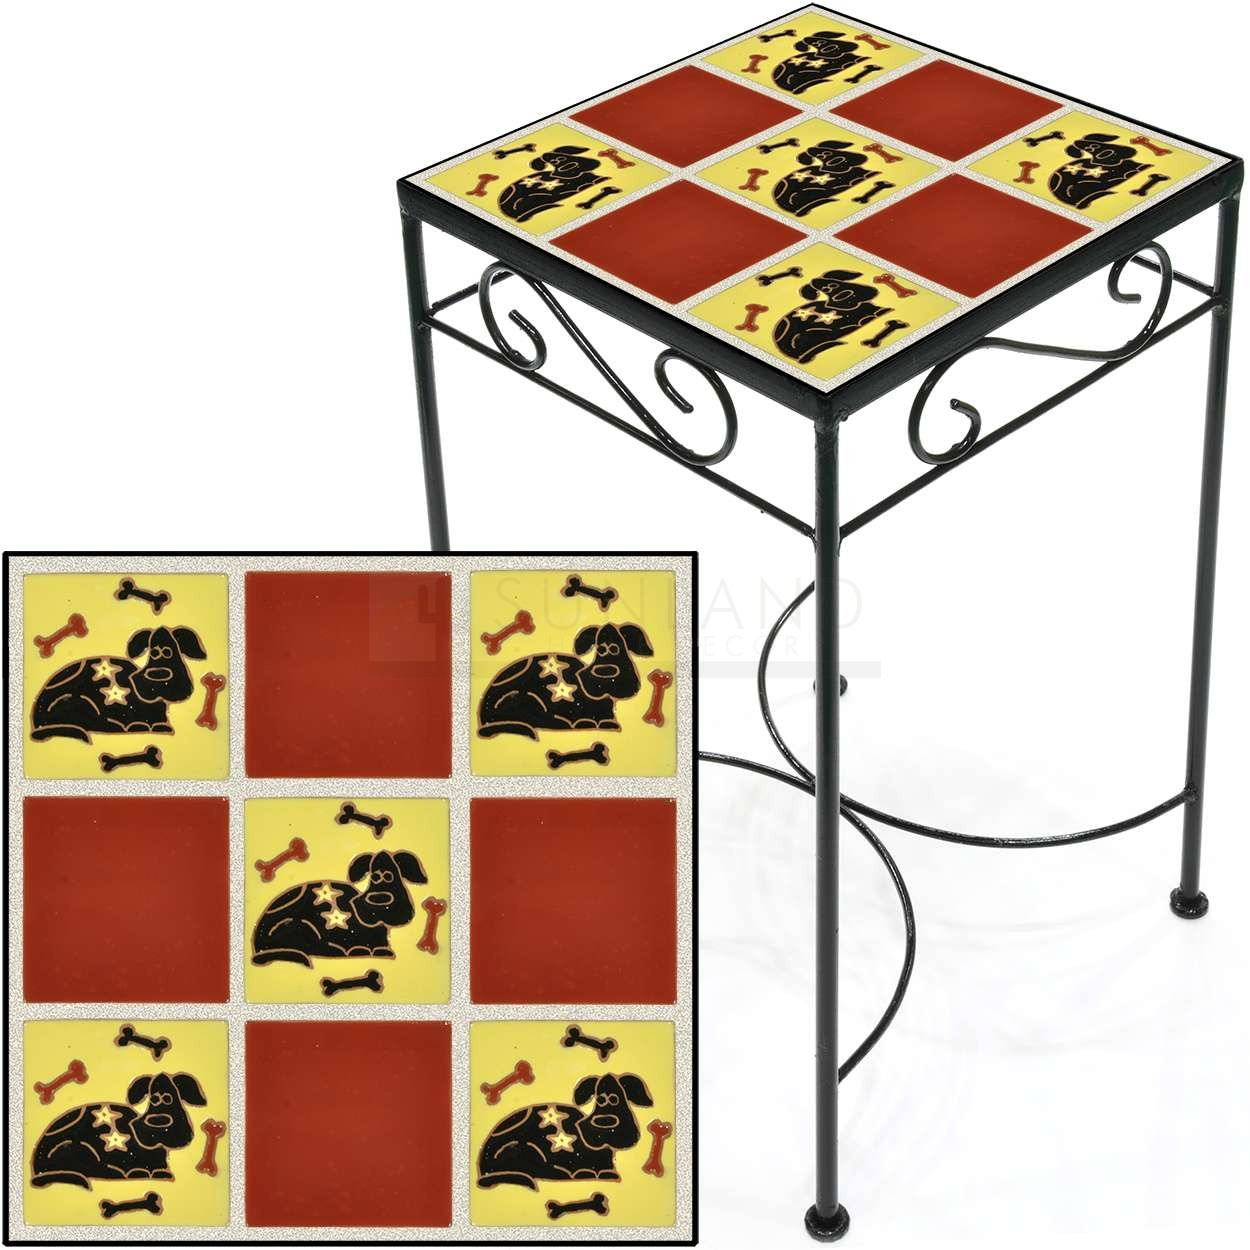 tile accent table dog and bones red square save tall metal sea themed lamps marble wood side usb lamp outdoor umbrella silver tray replica furniture coffee farm trestle dining top